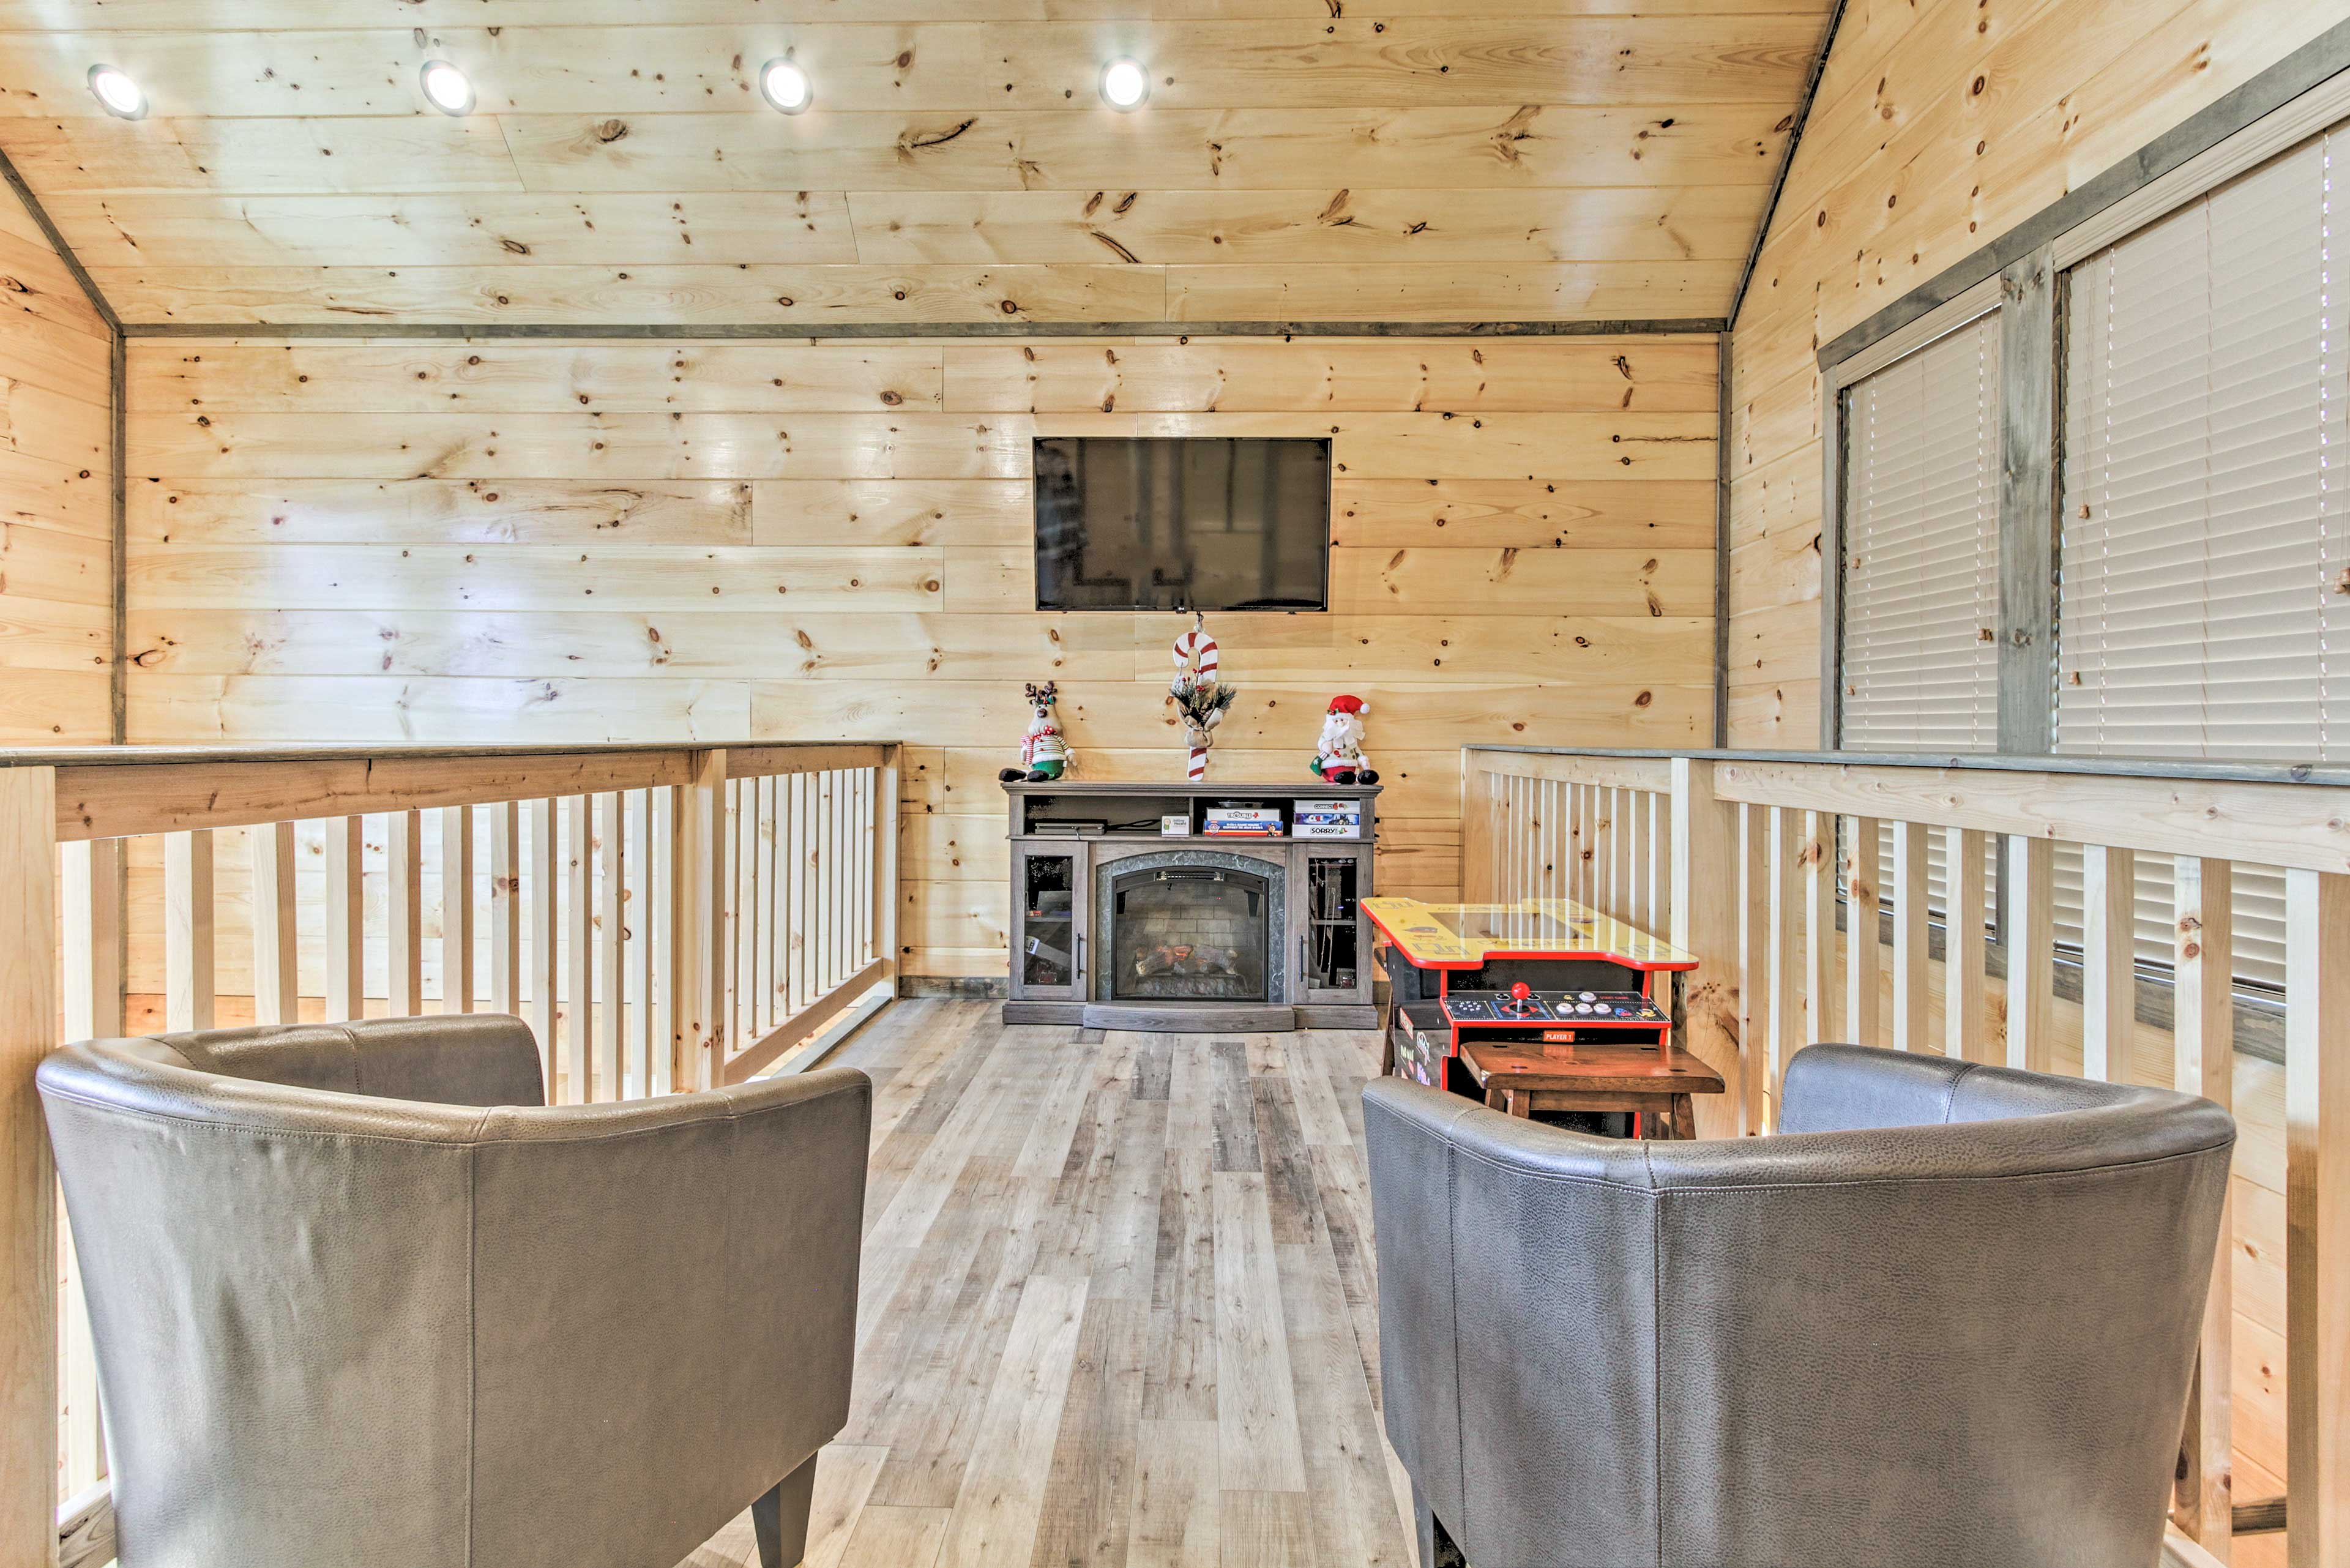 Kick back and relax in the loft with a second fireplace.